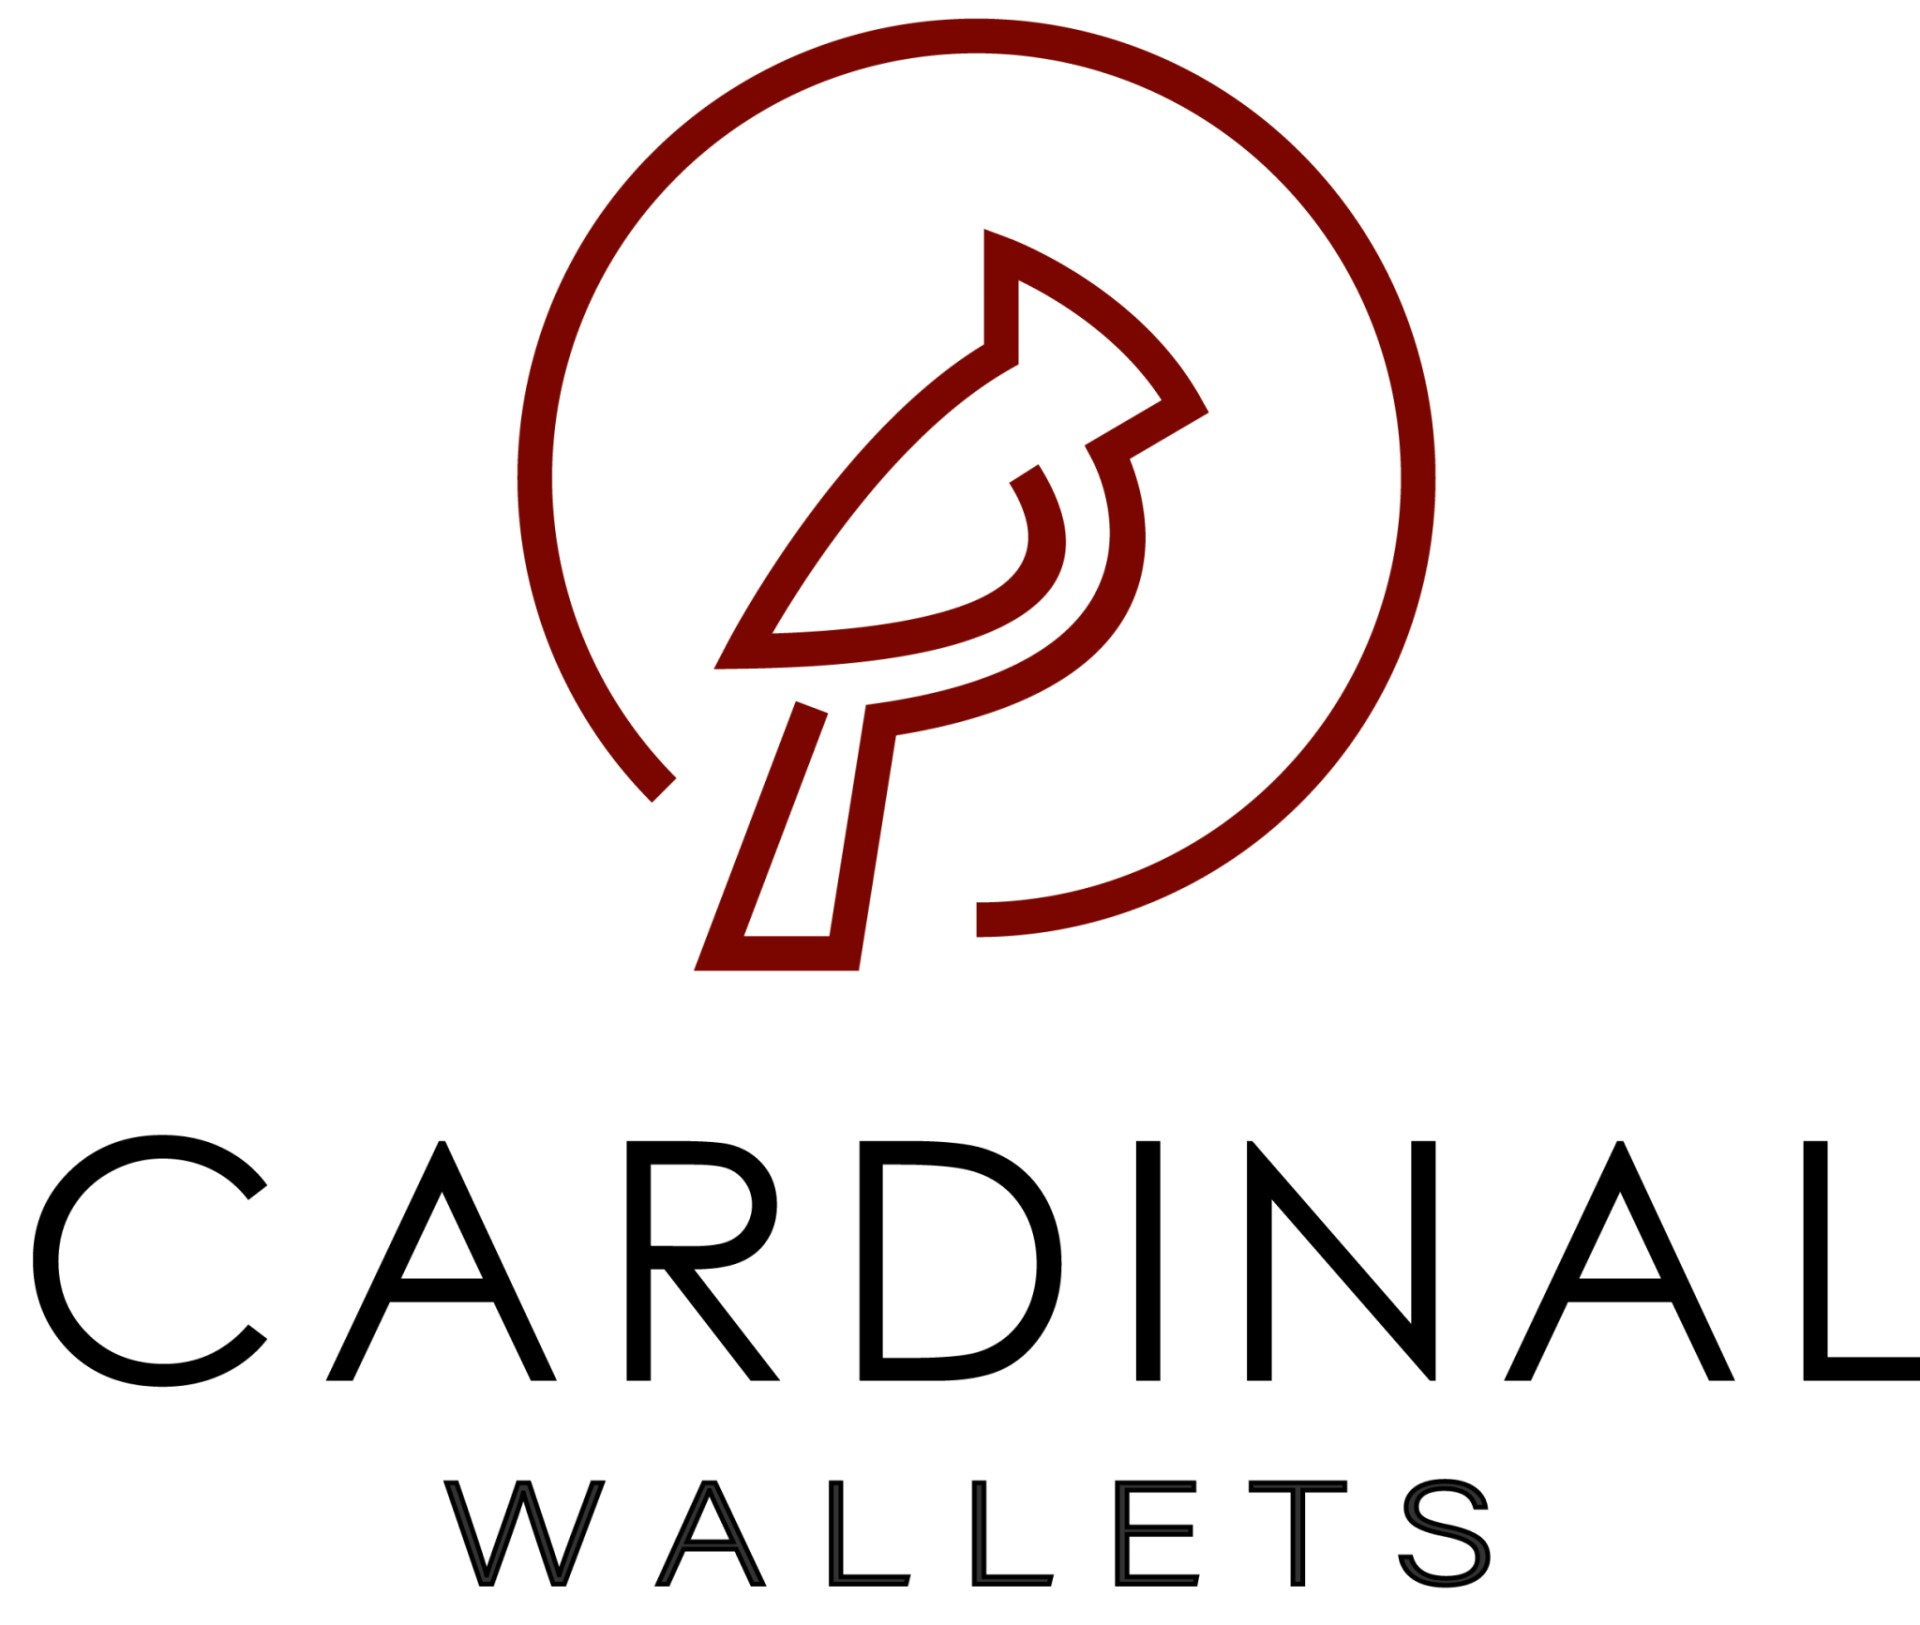 Cardinal Wallets Offers An Alternative And Unique Wallet Design Proposition